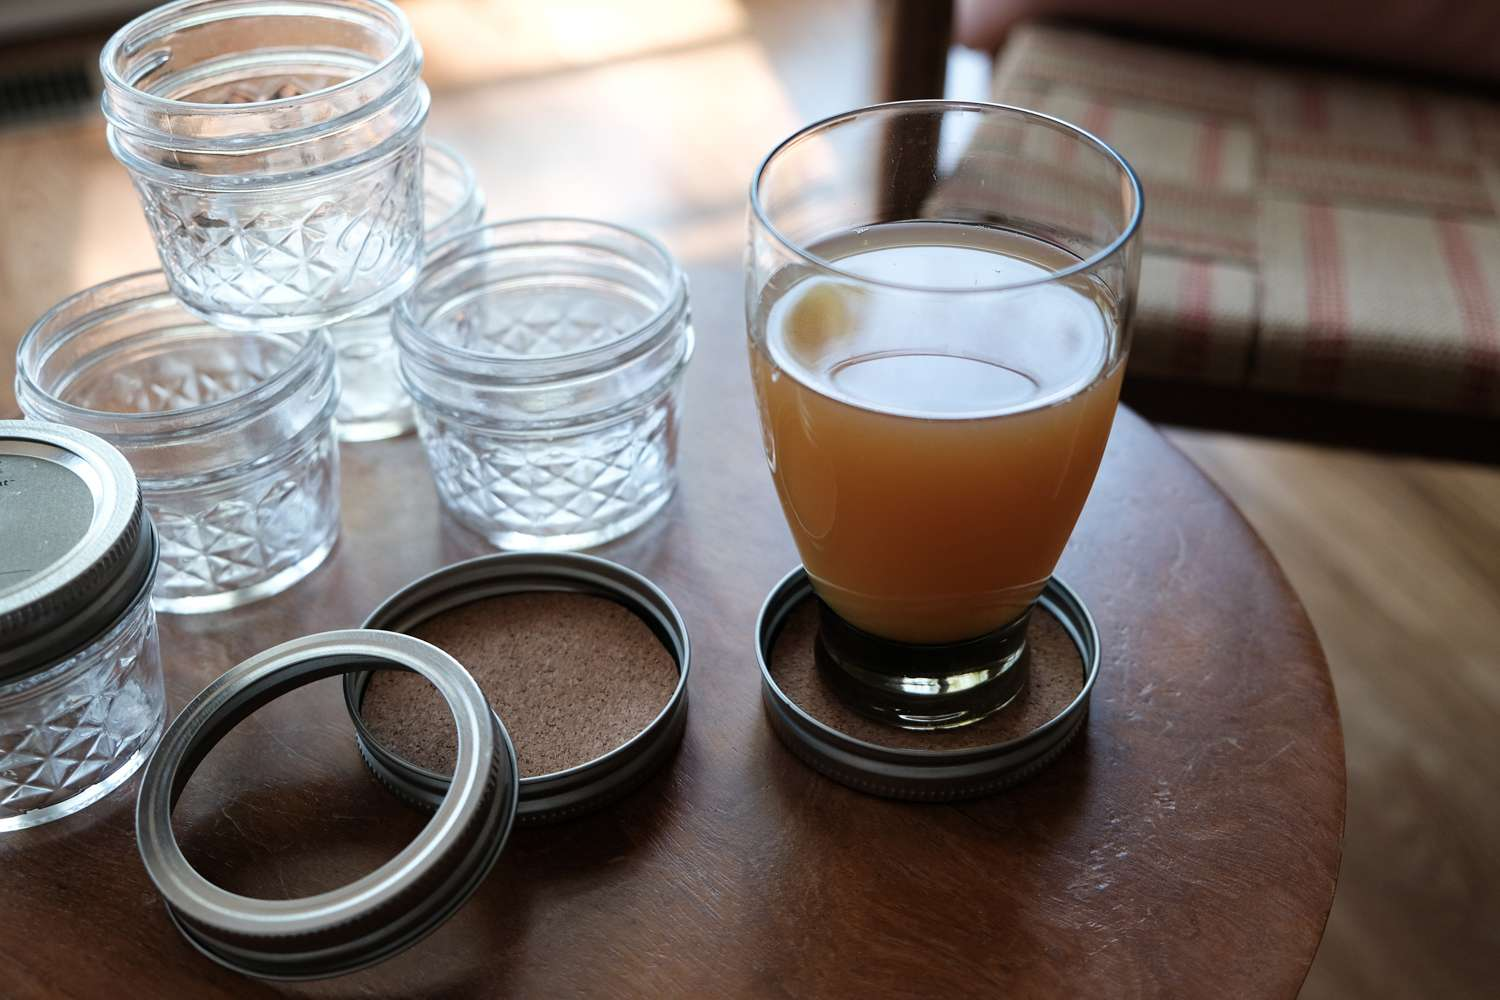 glass of warm beverage rests on DIY cork coaster made out of canning lid